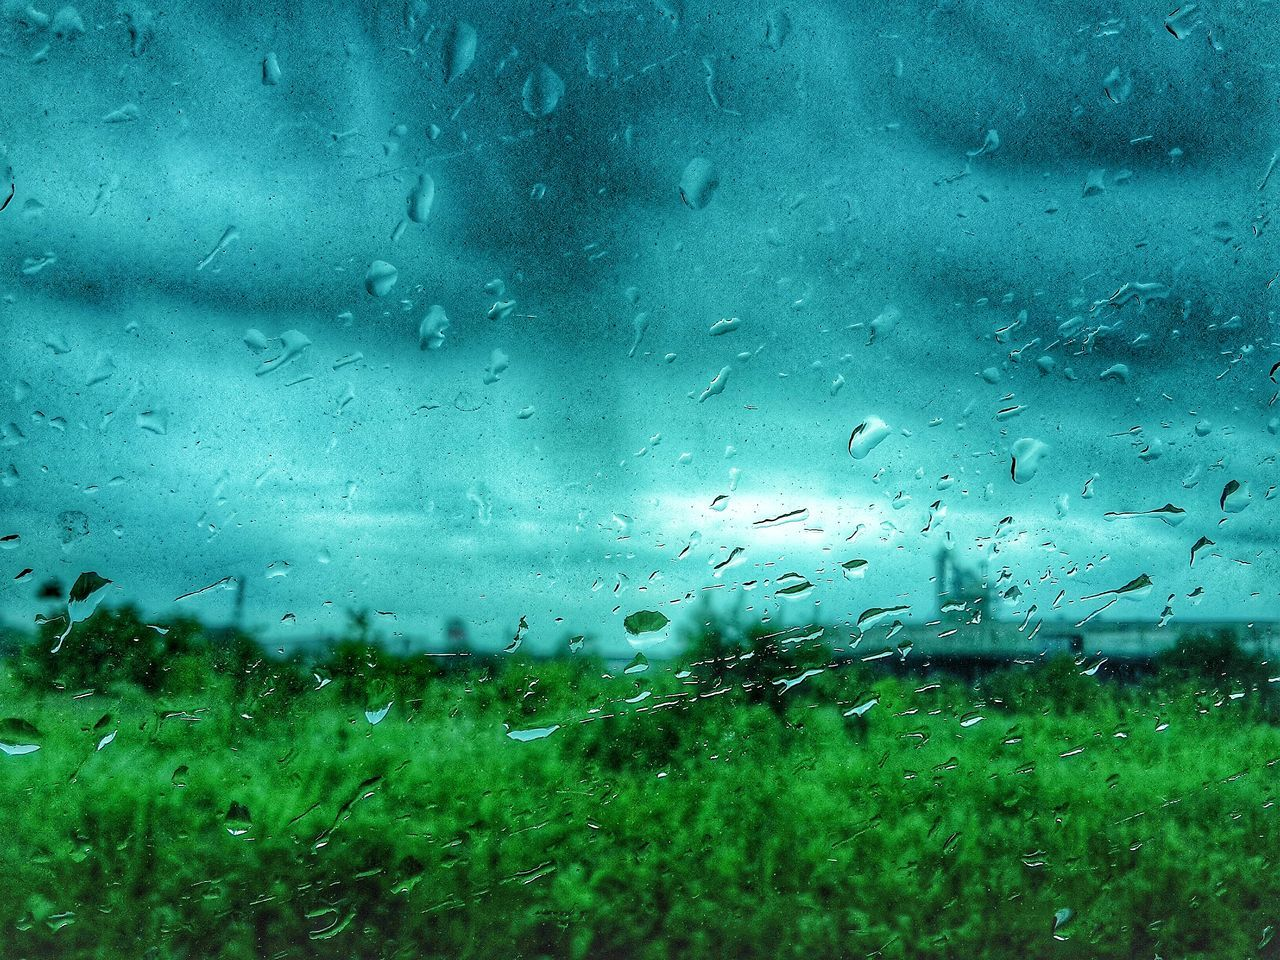 rain, drop, raindrop, wet, transparent, weather, rainy season, glass - material, window, water, water drop, droplet, no people, grass, focus on foreground, nature, day, indoors, sky, close-up, backgrounds, storm cloud, landscape, freshness